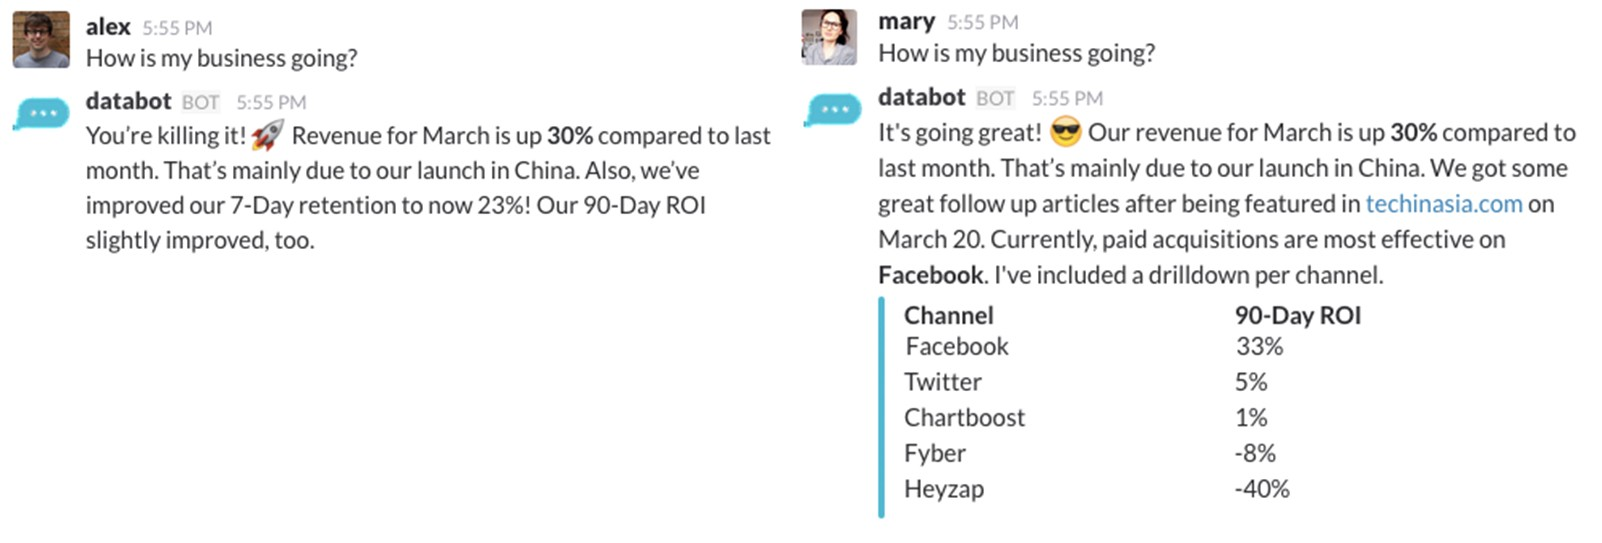 *Two users ask the **same **question but get a **personalized **answer based on their different **jobs **and **preferences. *Alex (CEO) gets an Executive Summary while Mary (CMO) gets an overview of channel performance.